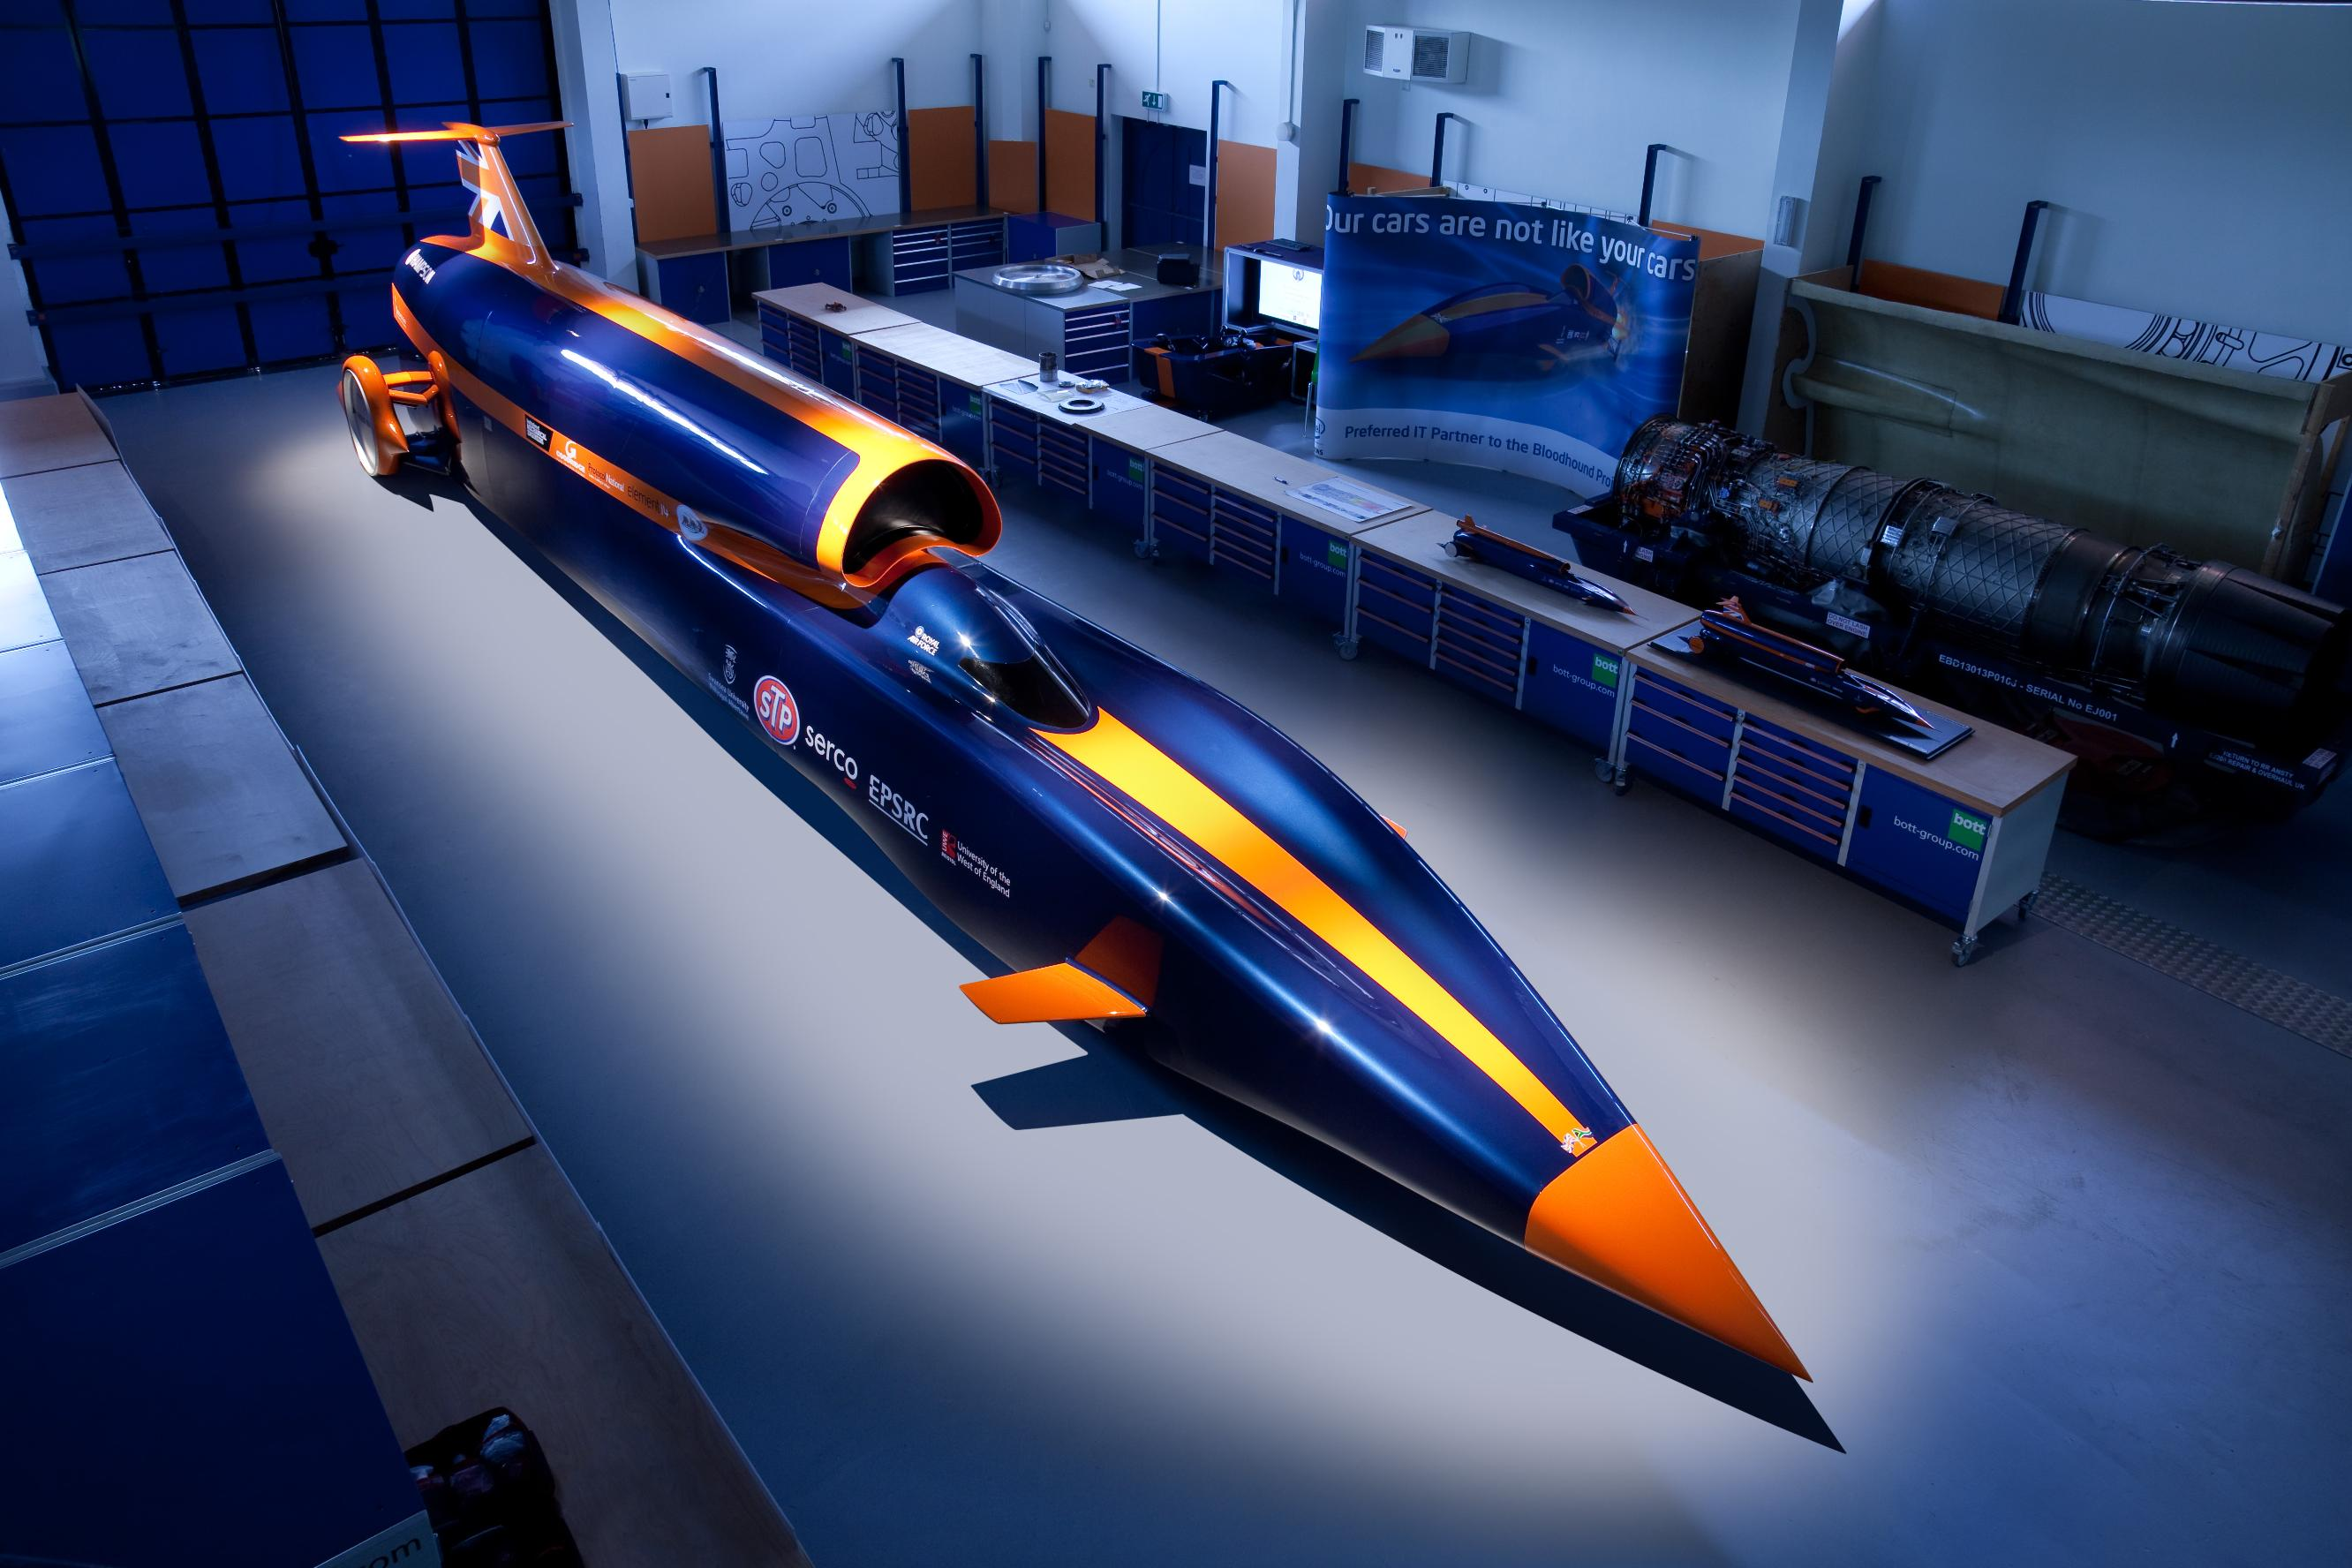 If successful Bloodhound SSC will be the first vehicle to be driven at more than 1000mph